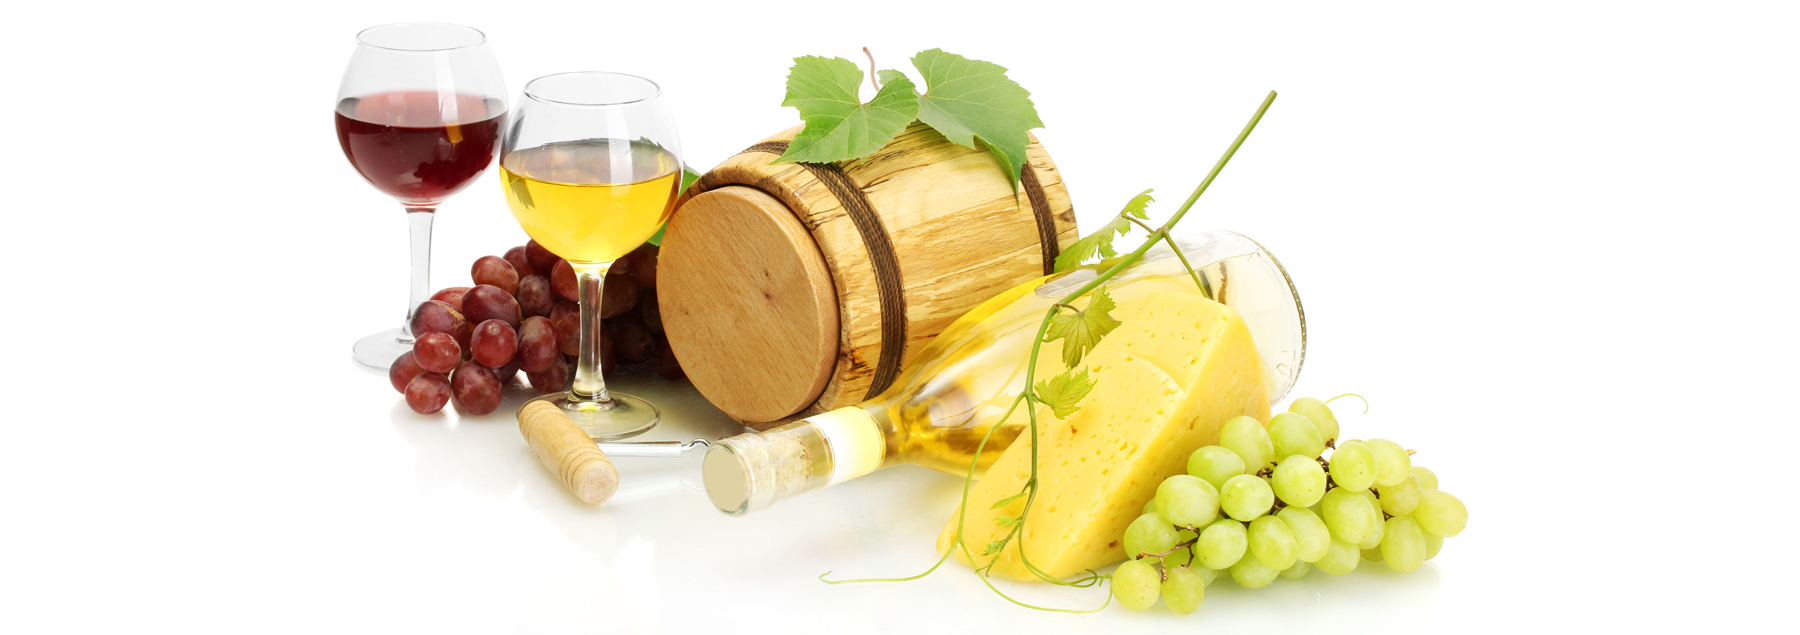 Wine-Grapes-Cheese-Barrel